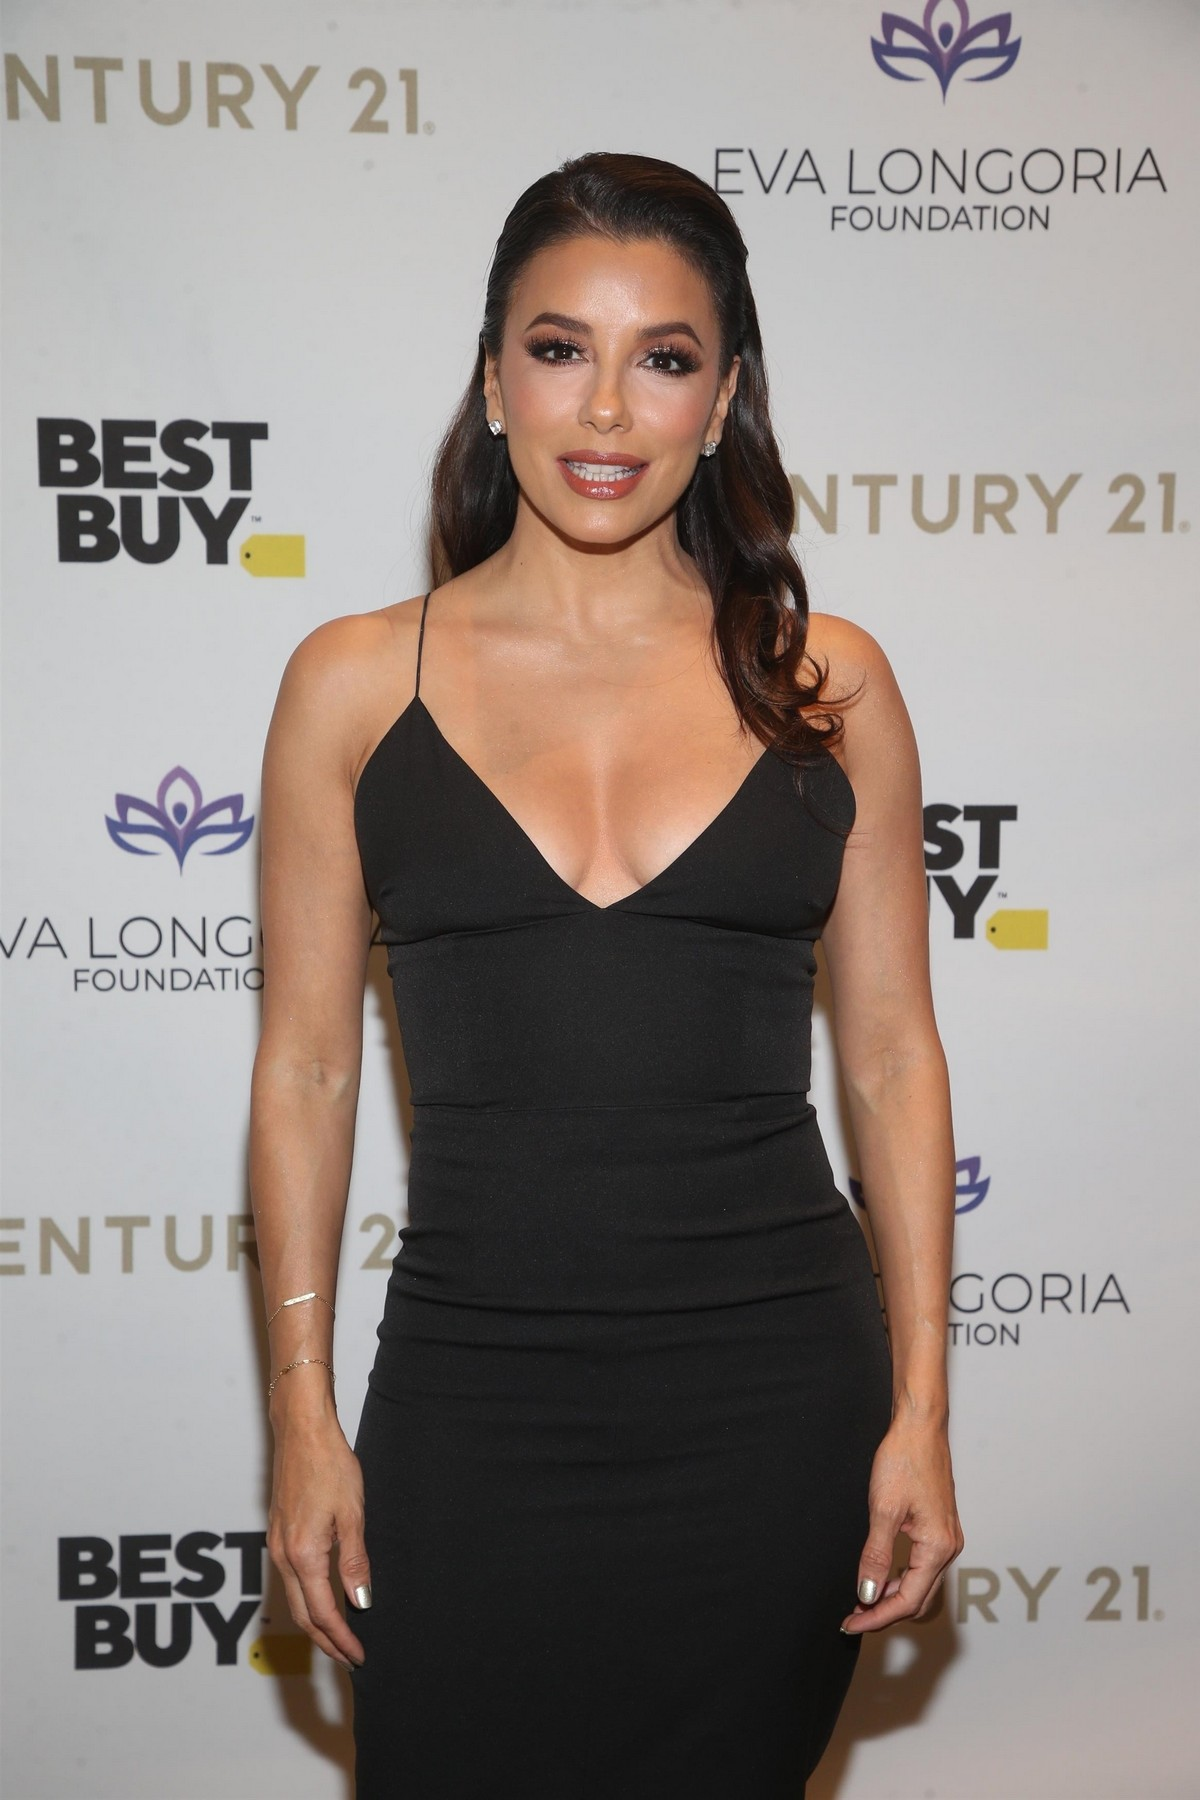 Eva Longoria attends The Eva Longoria Foundation Gala at the Four Seasons in Los Angeles 2019/11/15 7